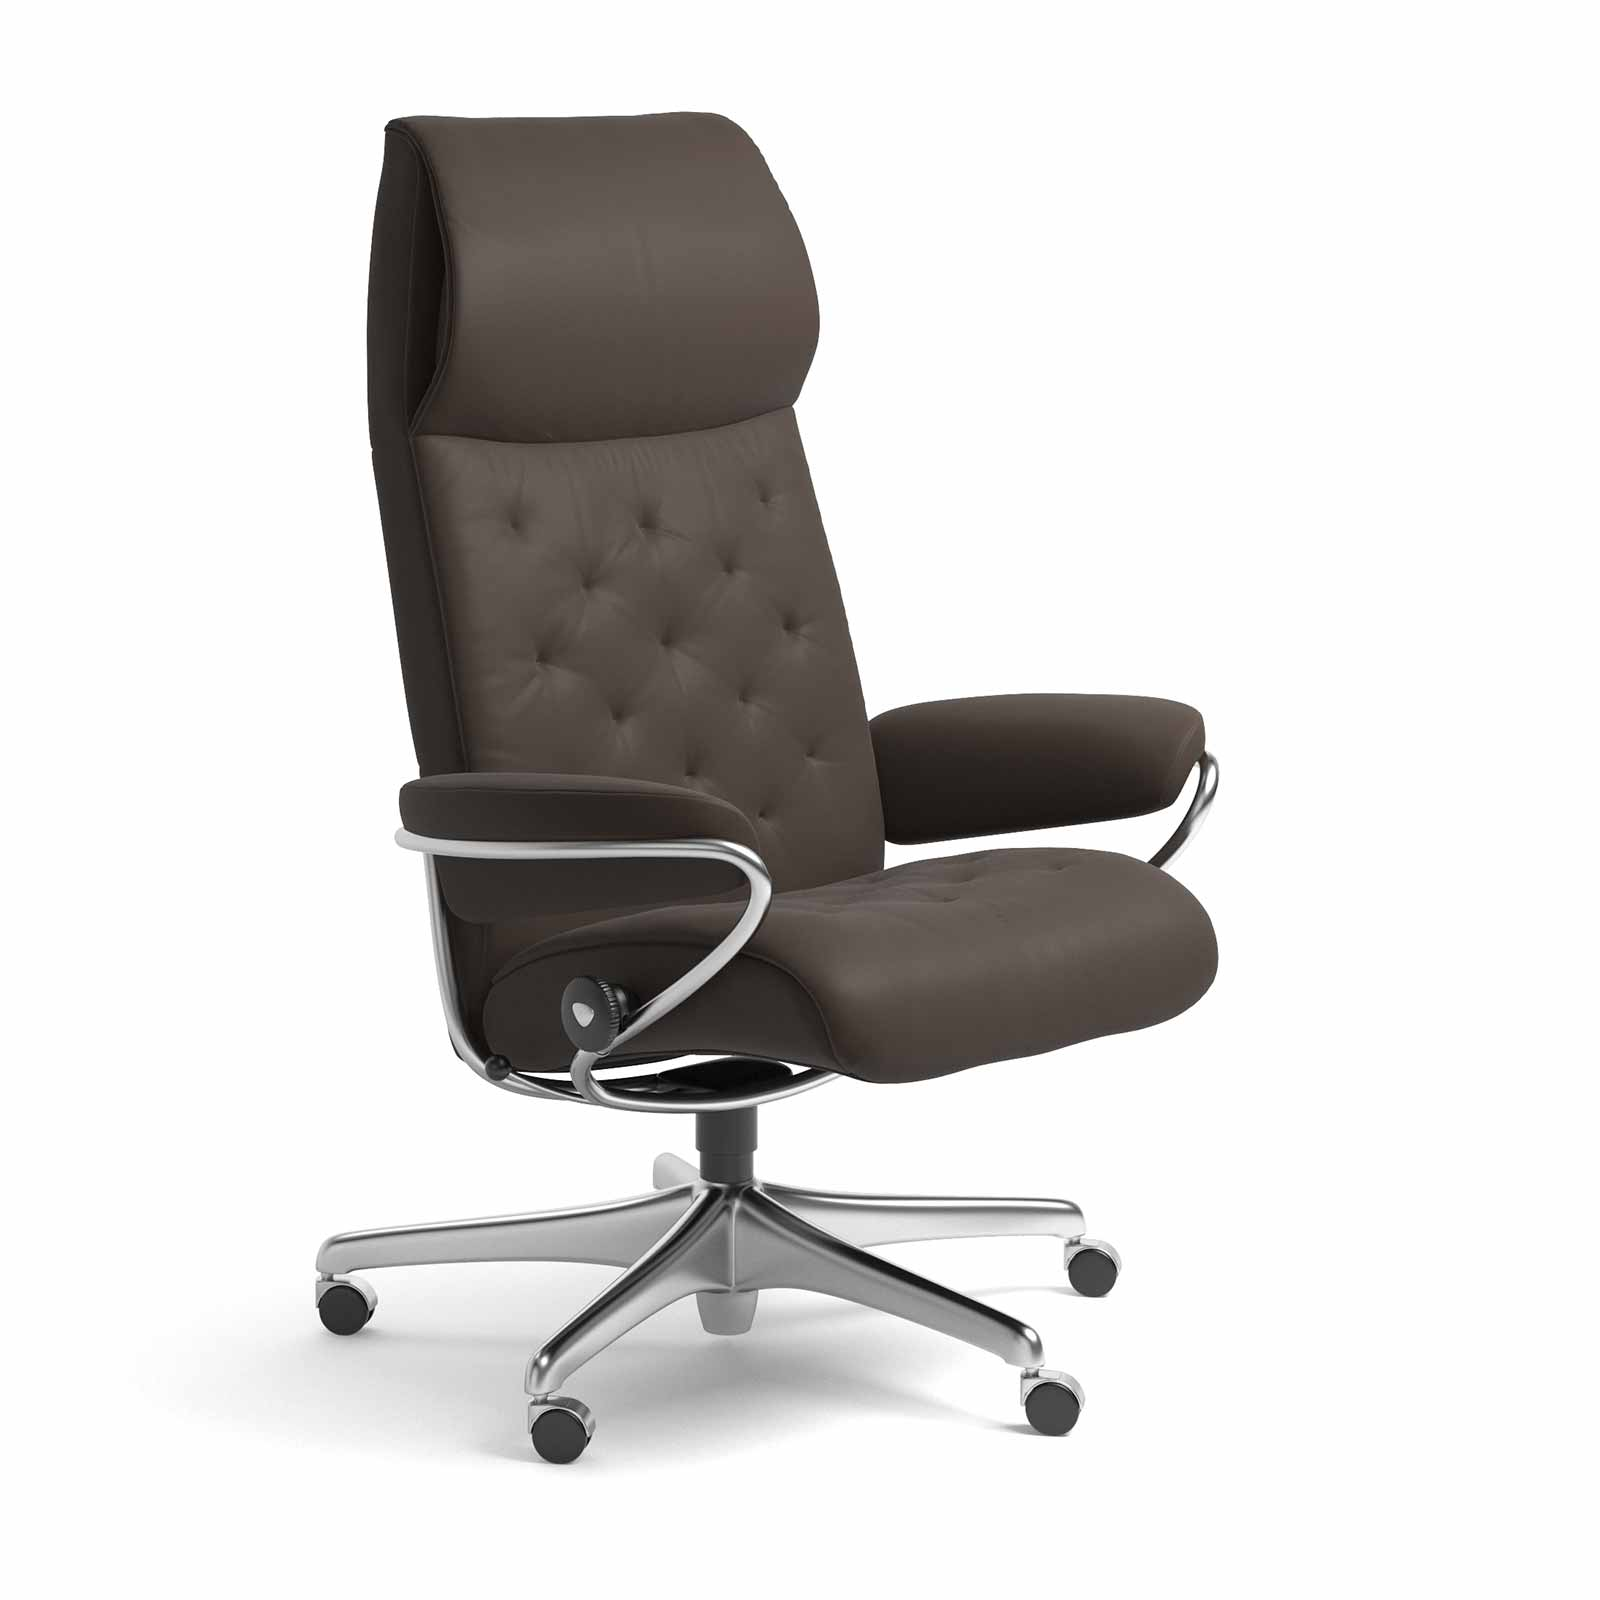 Sessel Metallgestell Stressless Sessel Metro Home Office High Back Leder Batick Braun